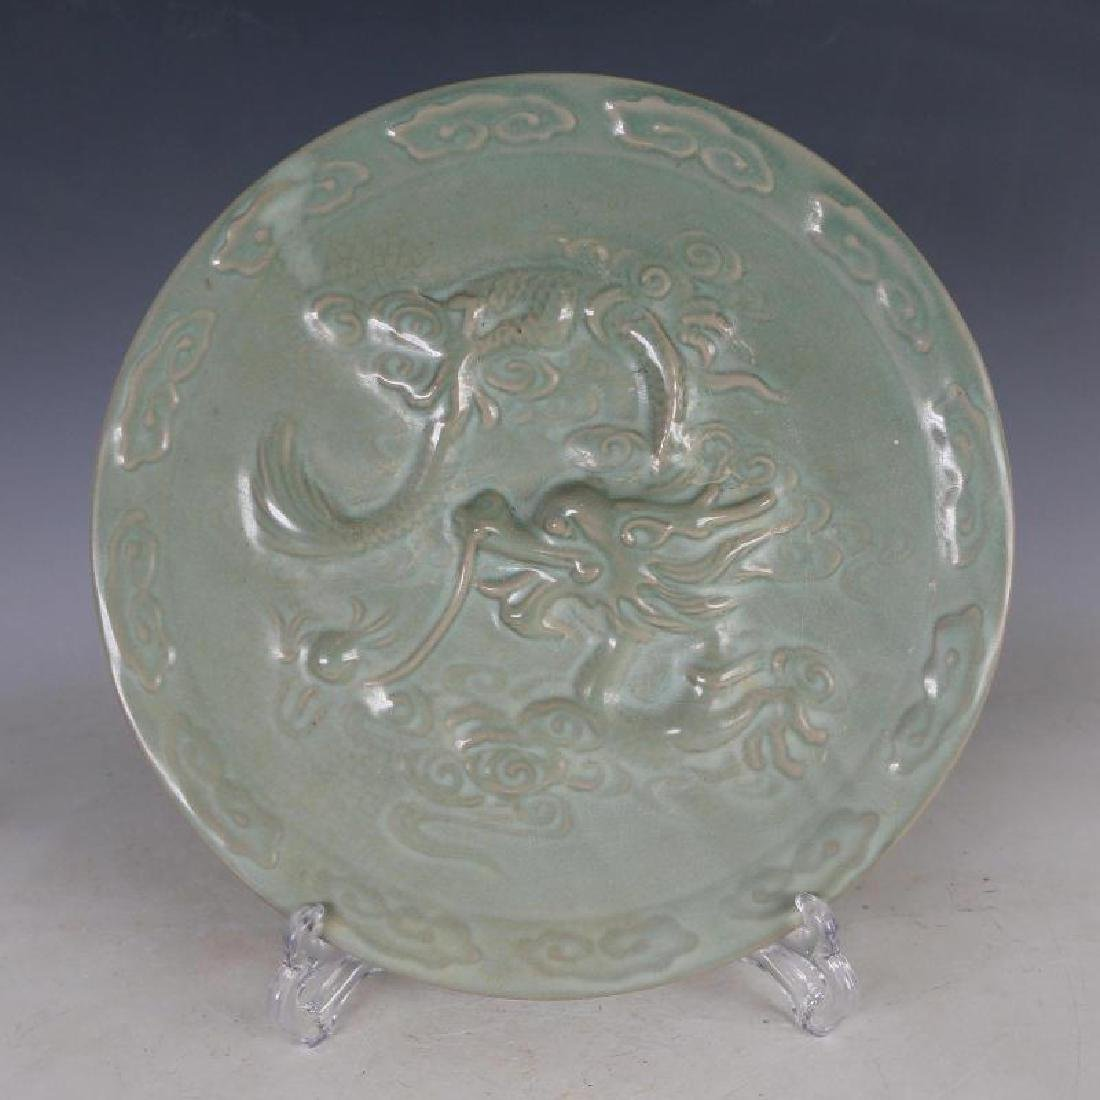 A Big Nice Ru Kiln Fenqing Glaze Relief Carving Dragon